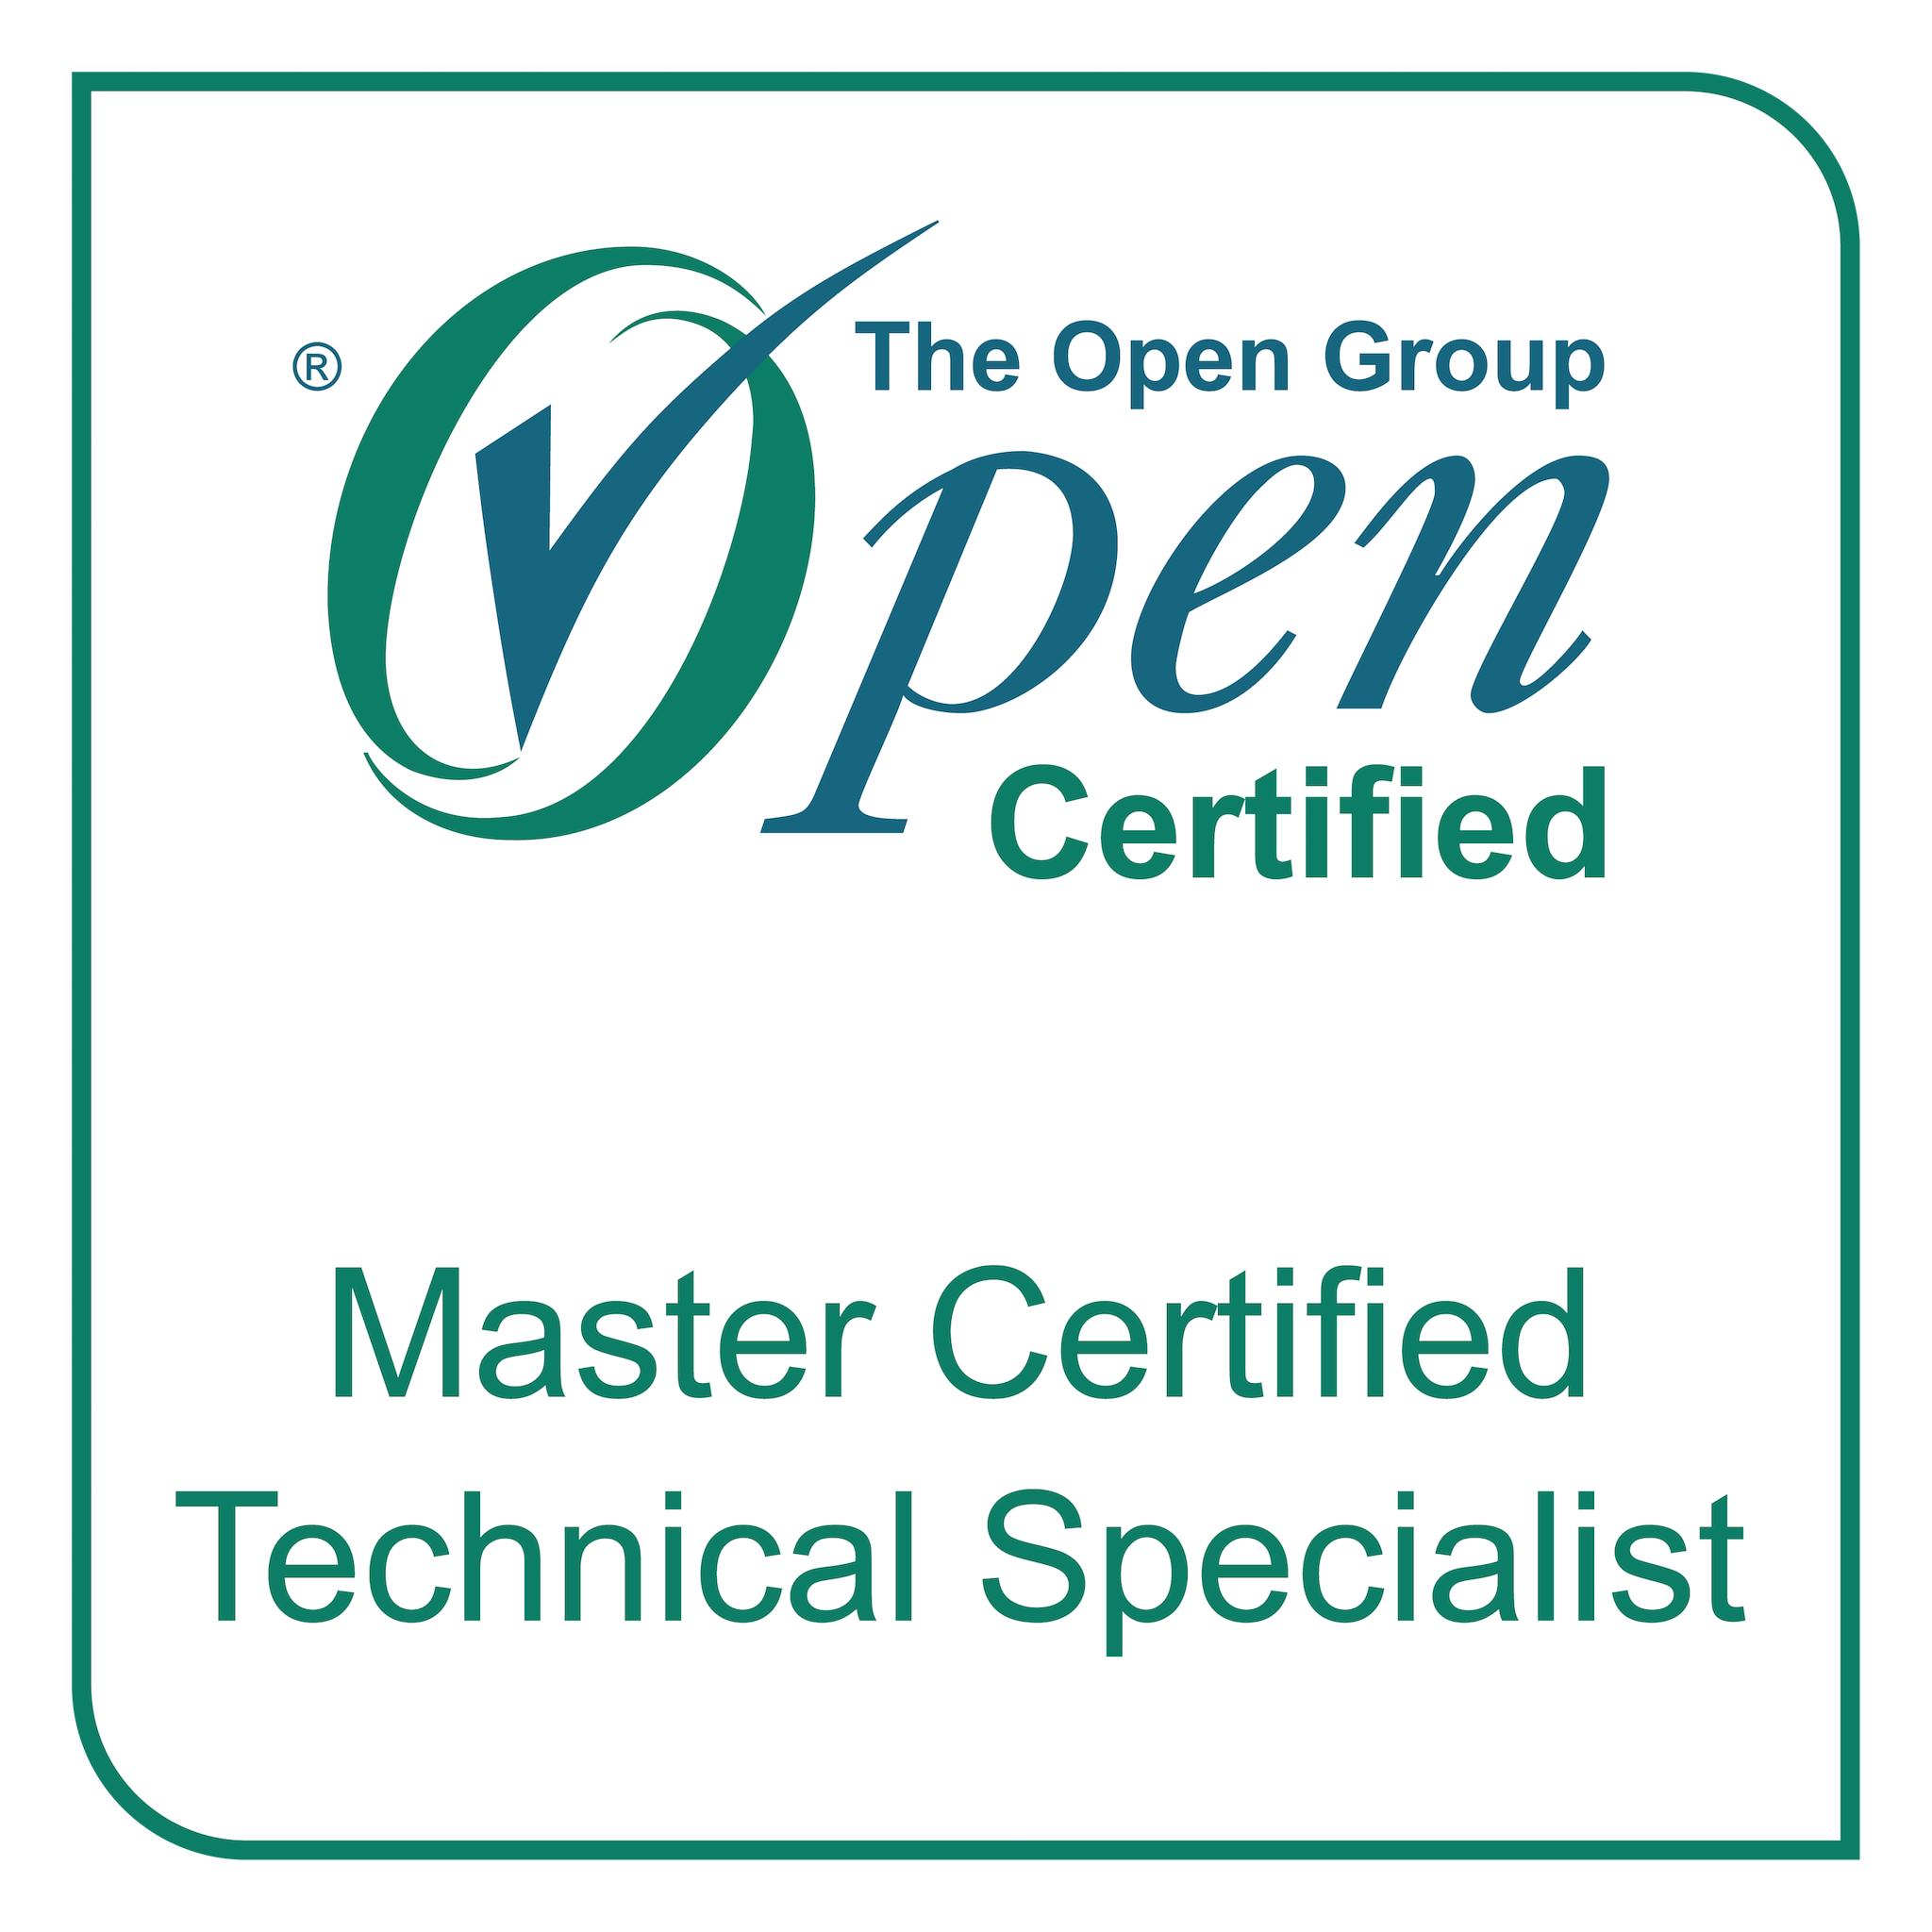 Professional Certification: Master Certified Technical Specialist, Infrastructure and Application Management